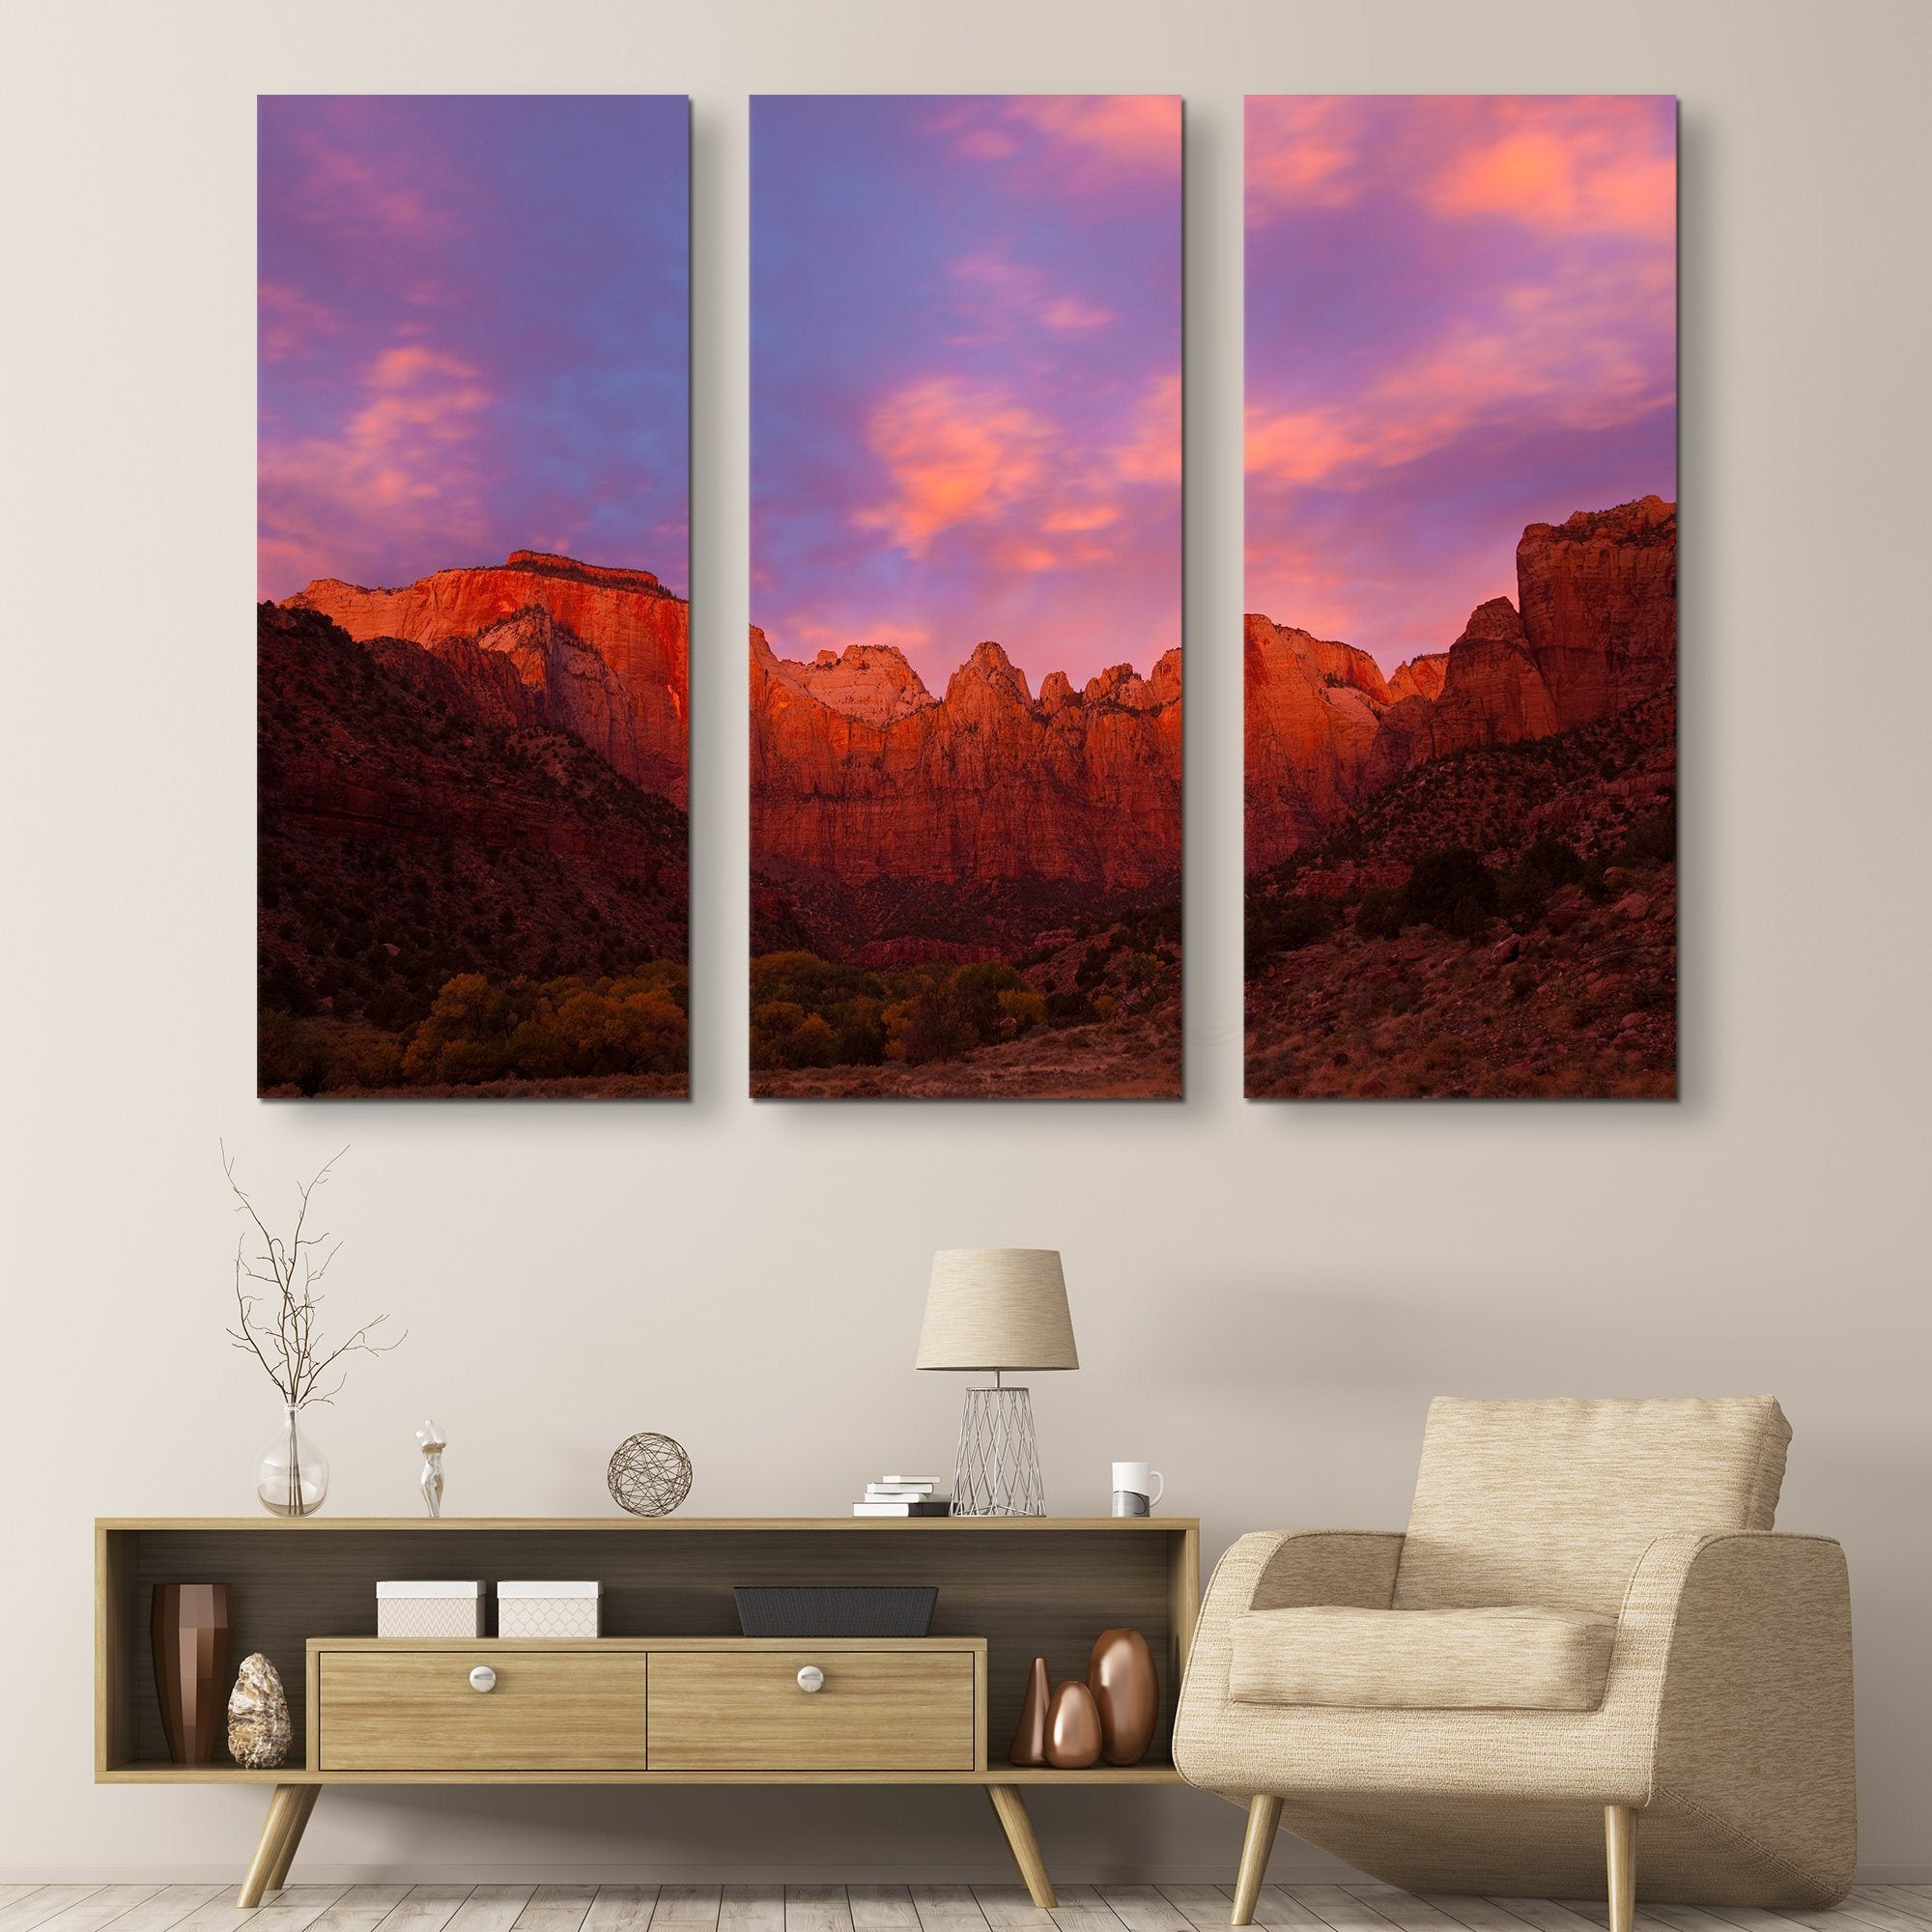 Towers of Virgin wall art 3 piece